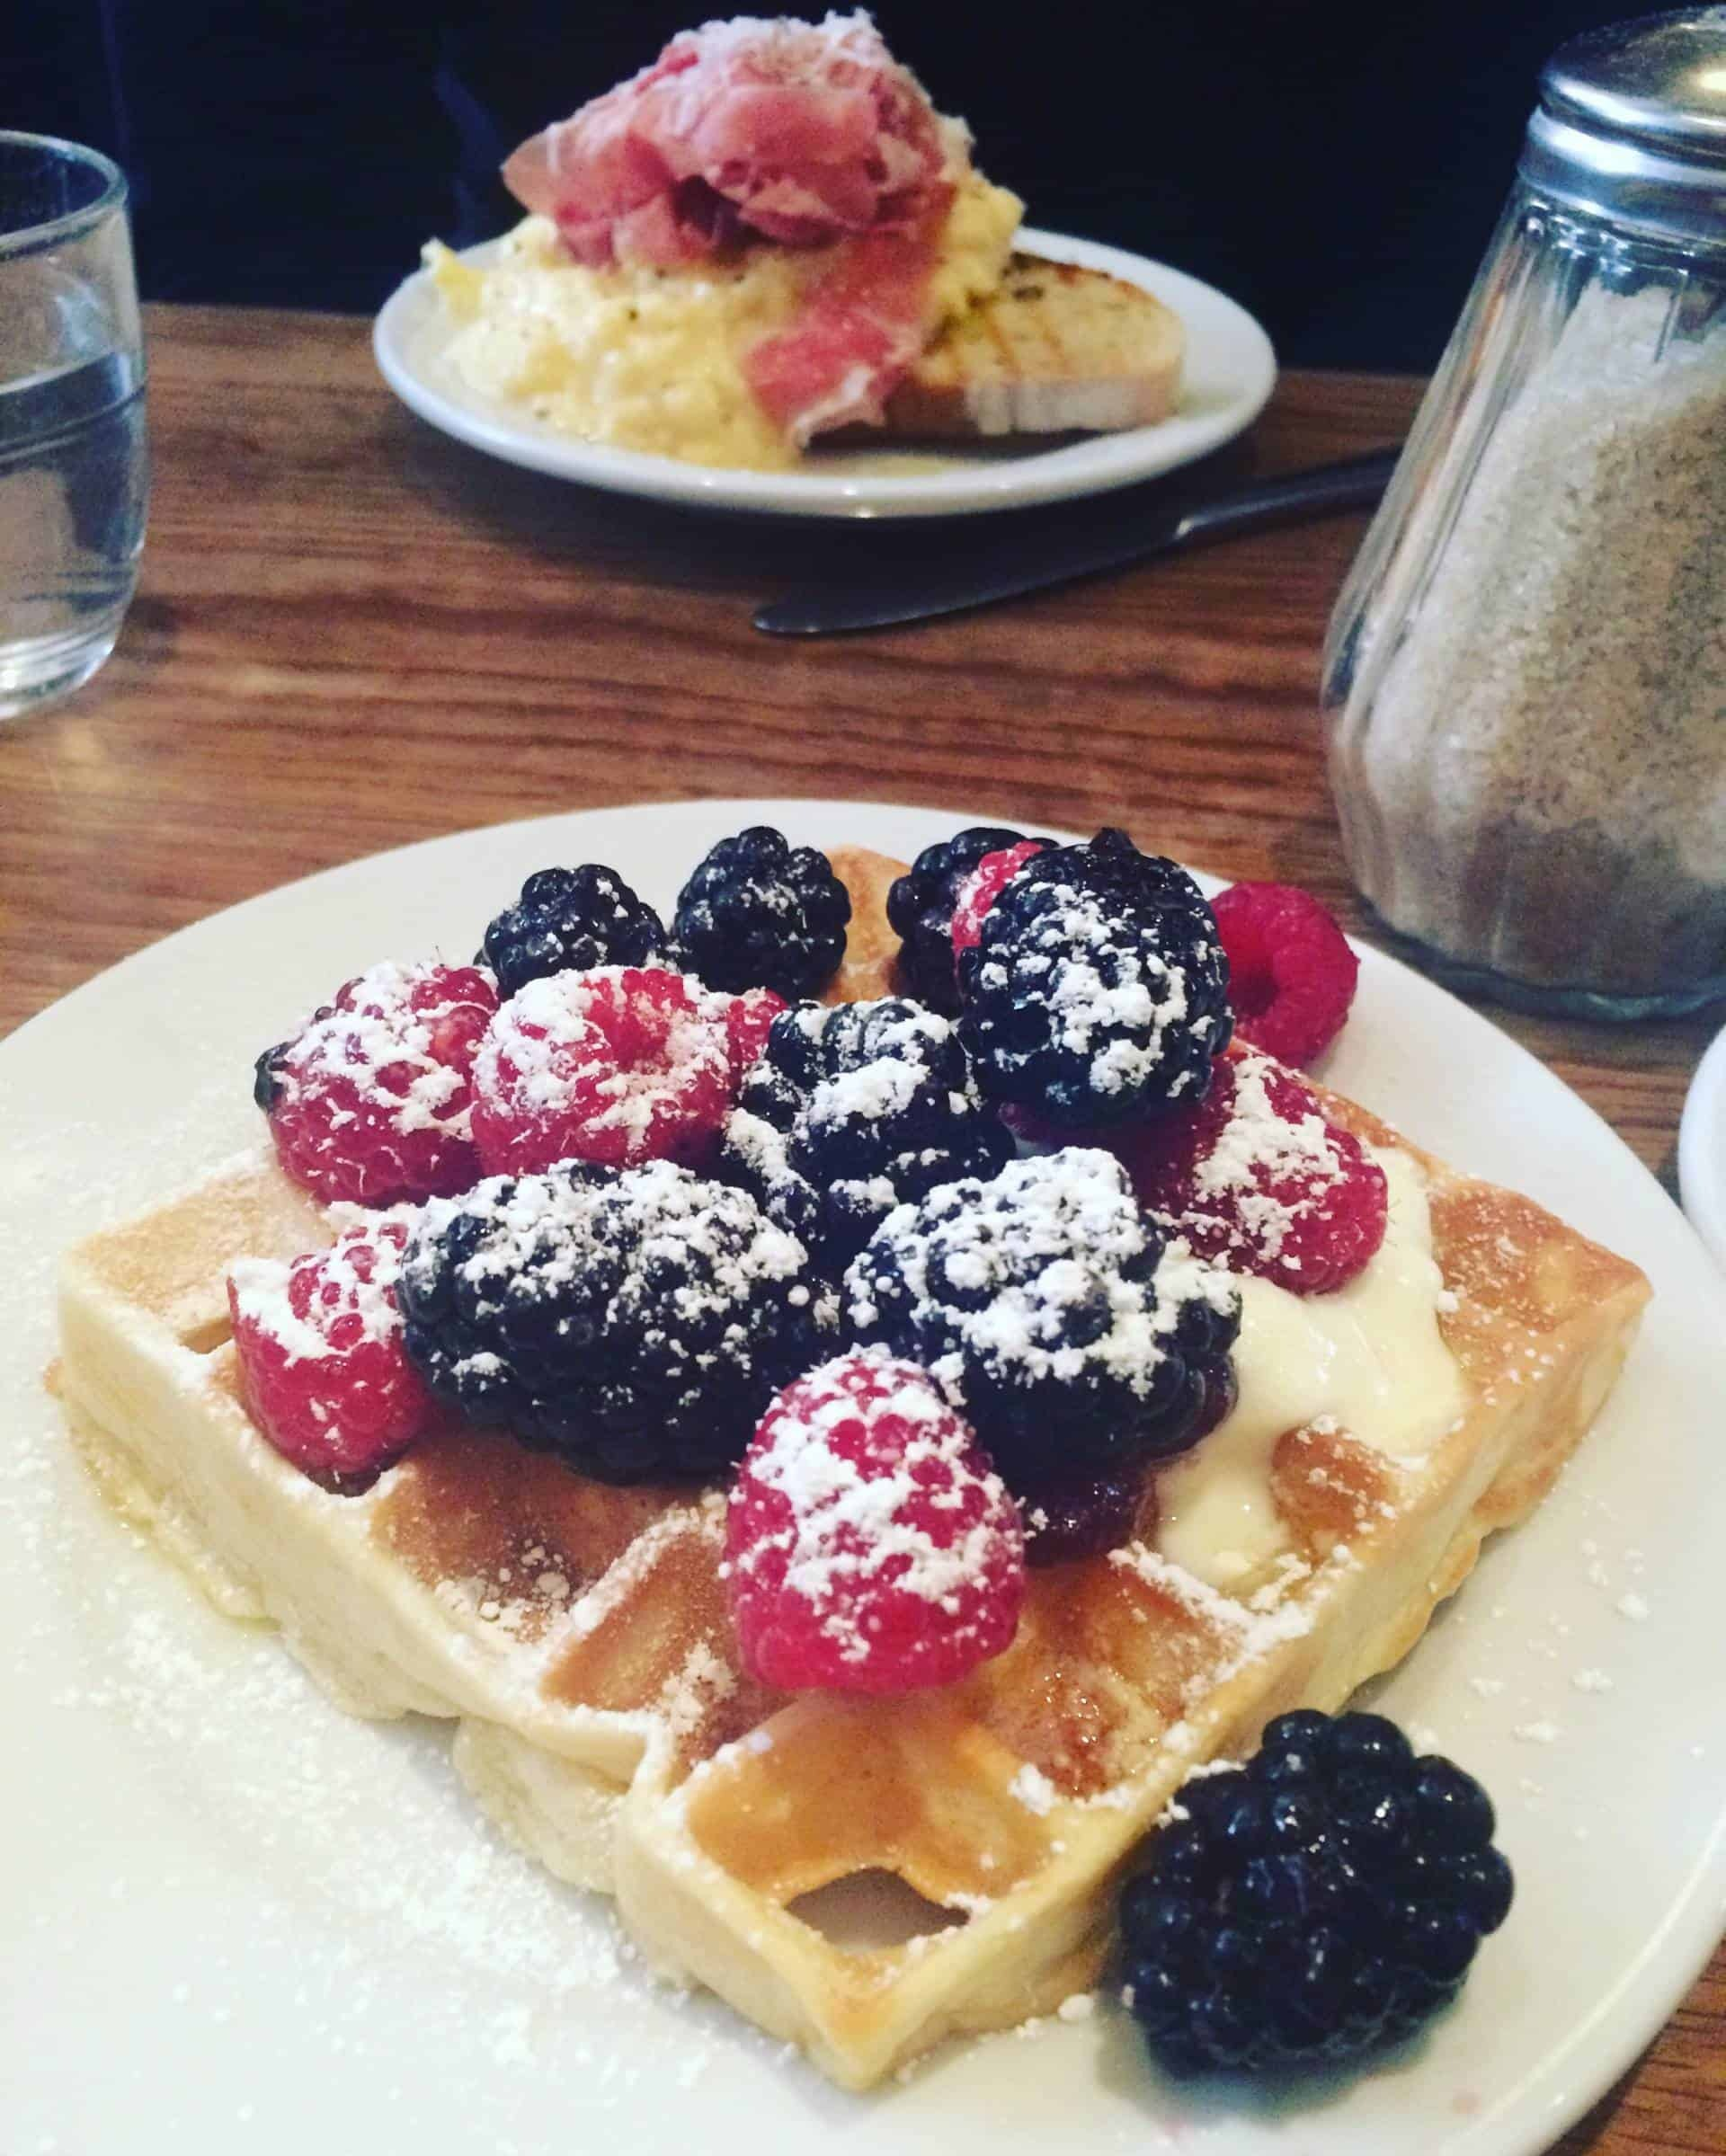 Breakfast waffles at Buvette in New York